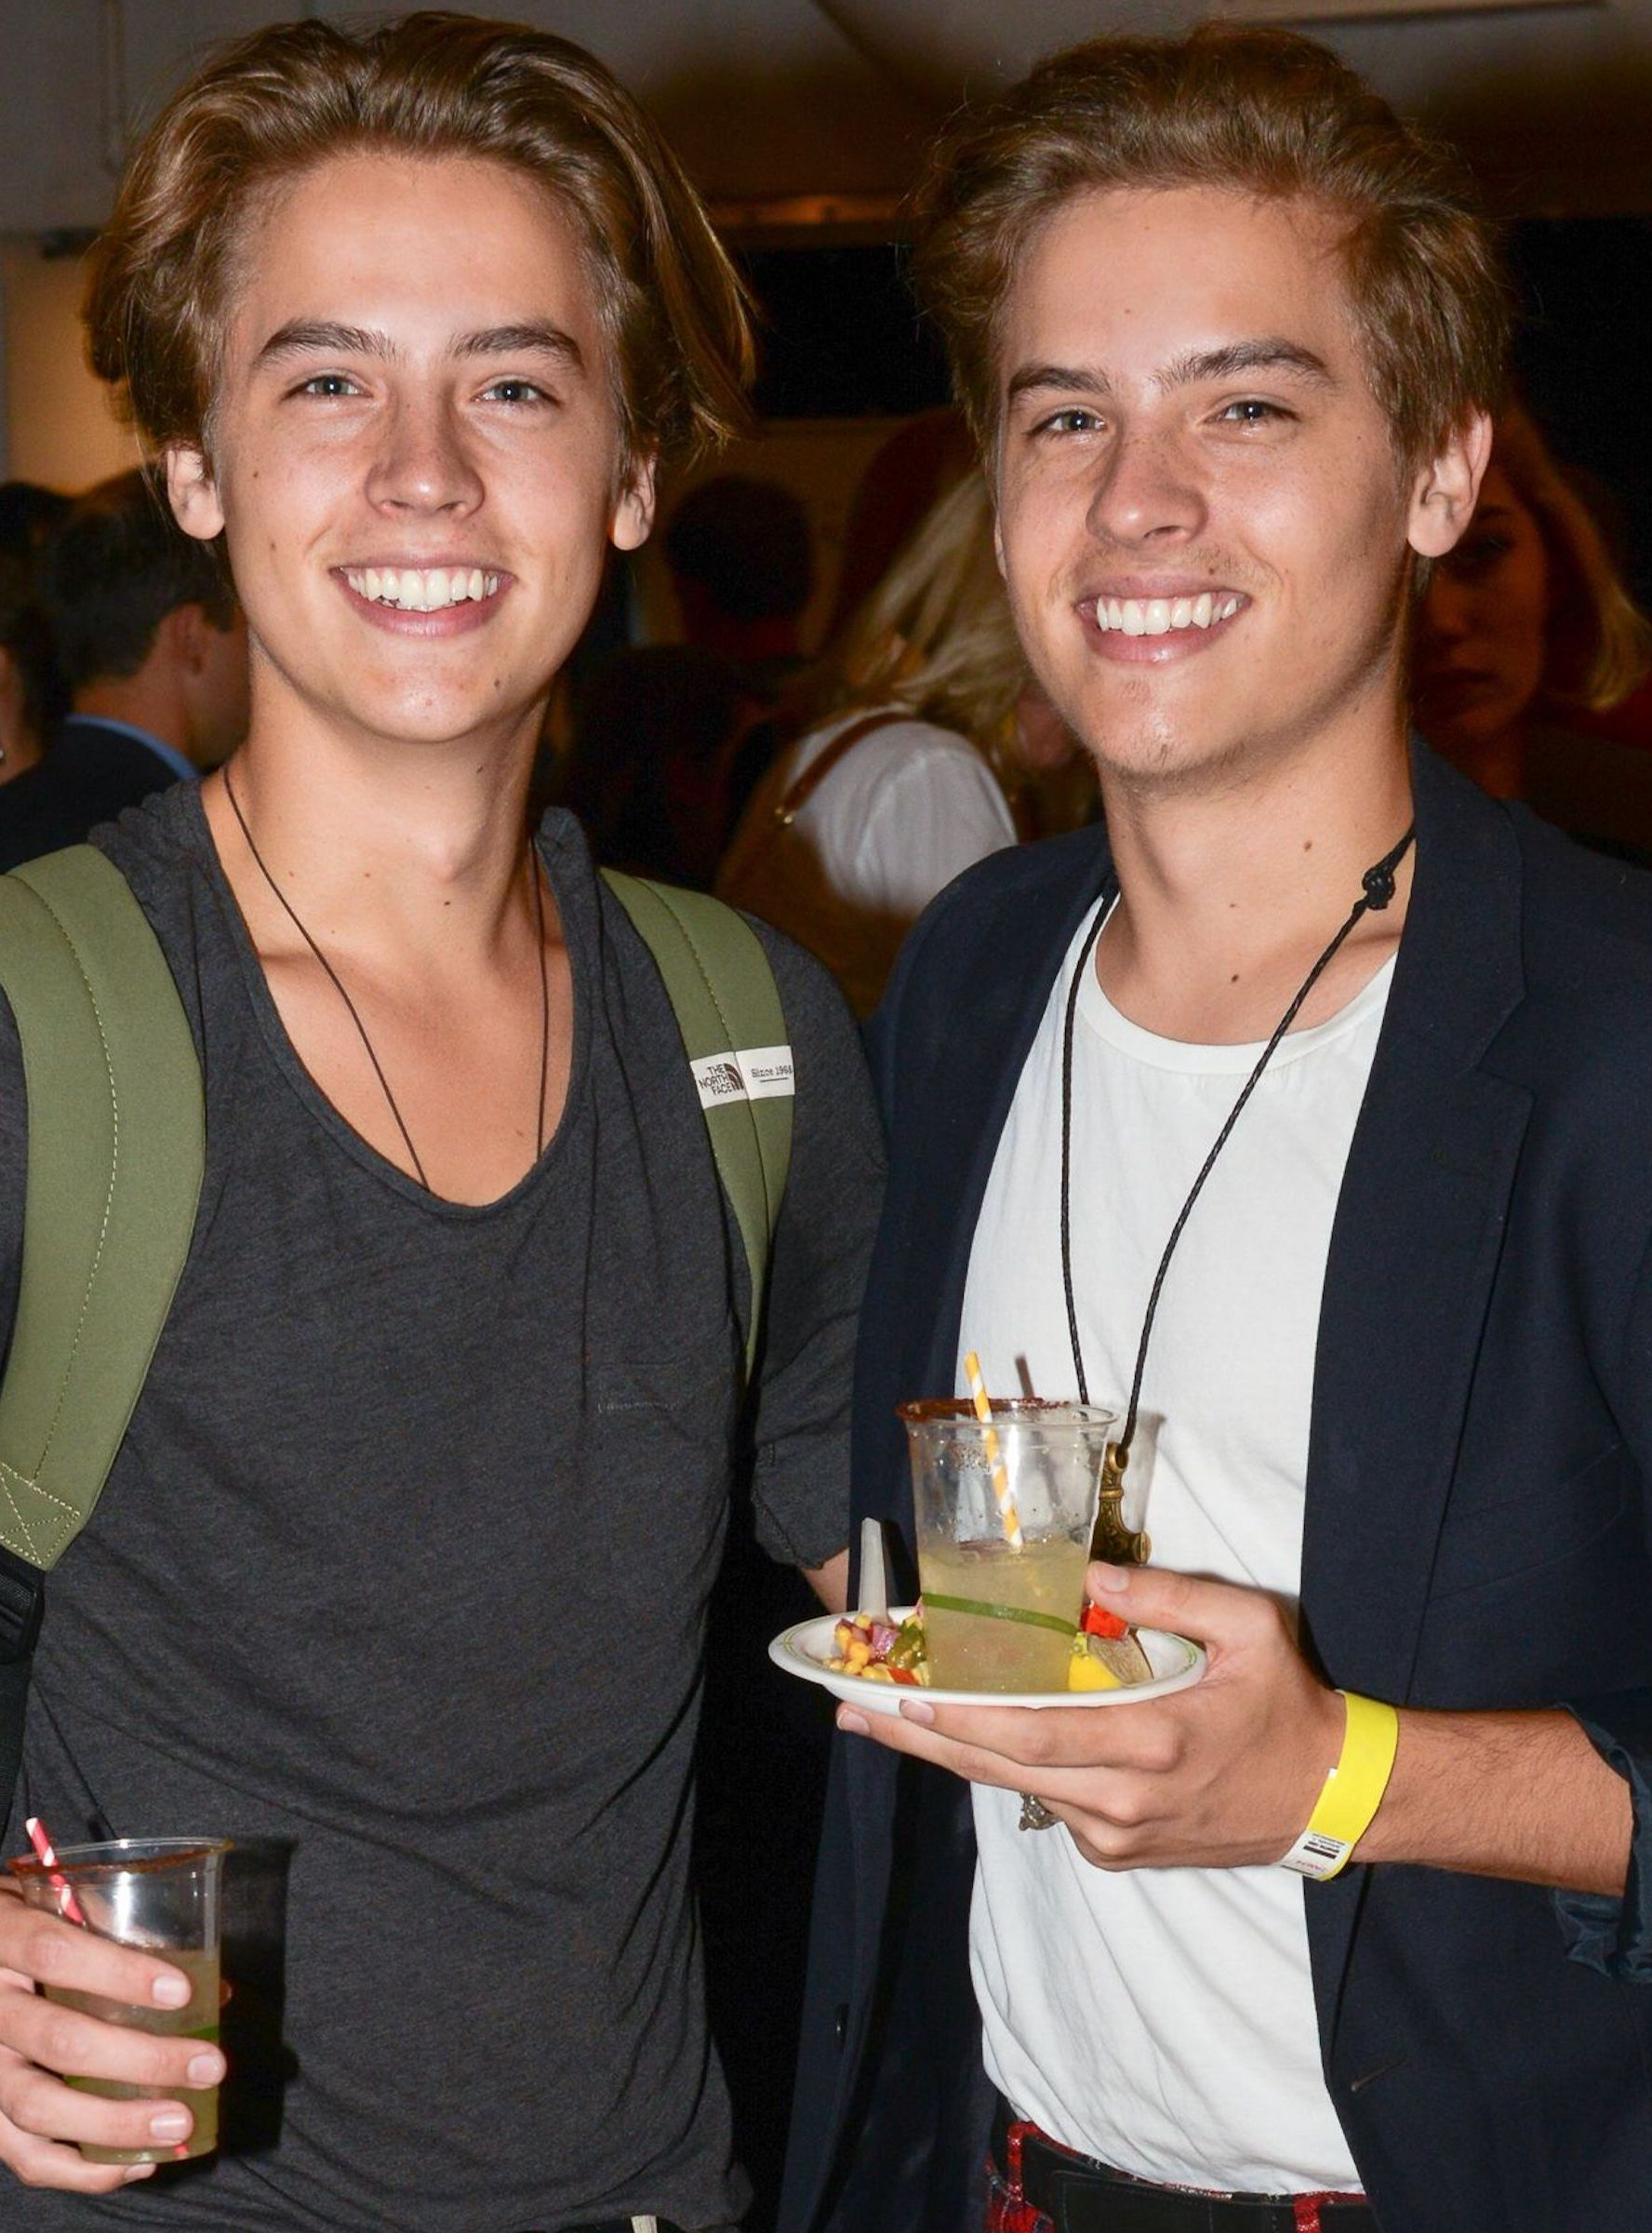 Cole & Dylan Sprouse Are Very Good At Trolling Each Other  #refinery29 #coleanddylansprouse Cole & Dylan Sprouse Are Very Good At Trolling Each Other  #refinery29 #coleanddylansprouse Cole & Dylan Sprouse Are Very Good At Trolling Each Other  #refinery29 #coleanddylansprouse Cole & Dylan Sprouse Are Very Good At Trolling Each Other  #refinery29 #coleanddylansprouse Cole & Dylan Sprouse Are Very Good At Trolling Each Other  #refinery29 #coleanddylansprouse Cole & Dylan Sprouse Are Very Good At Tr #coleanddylansprouse